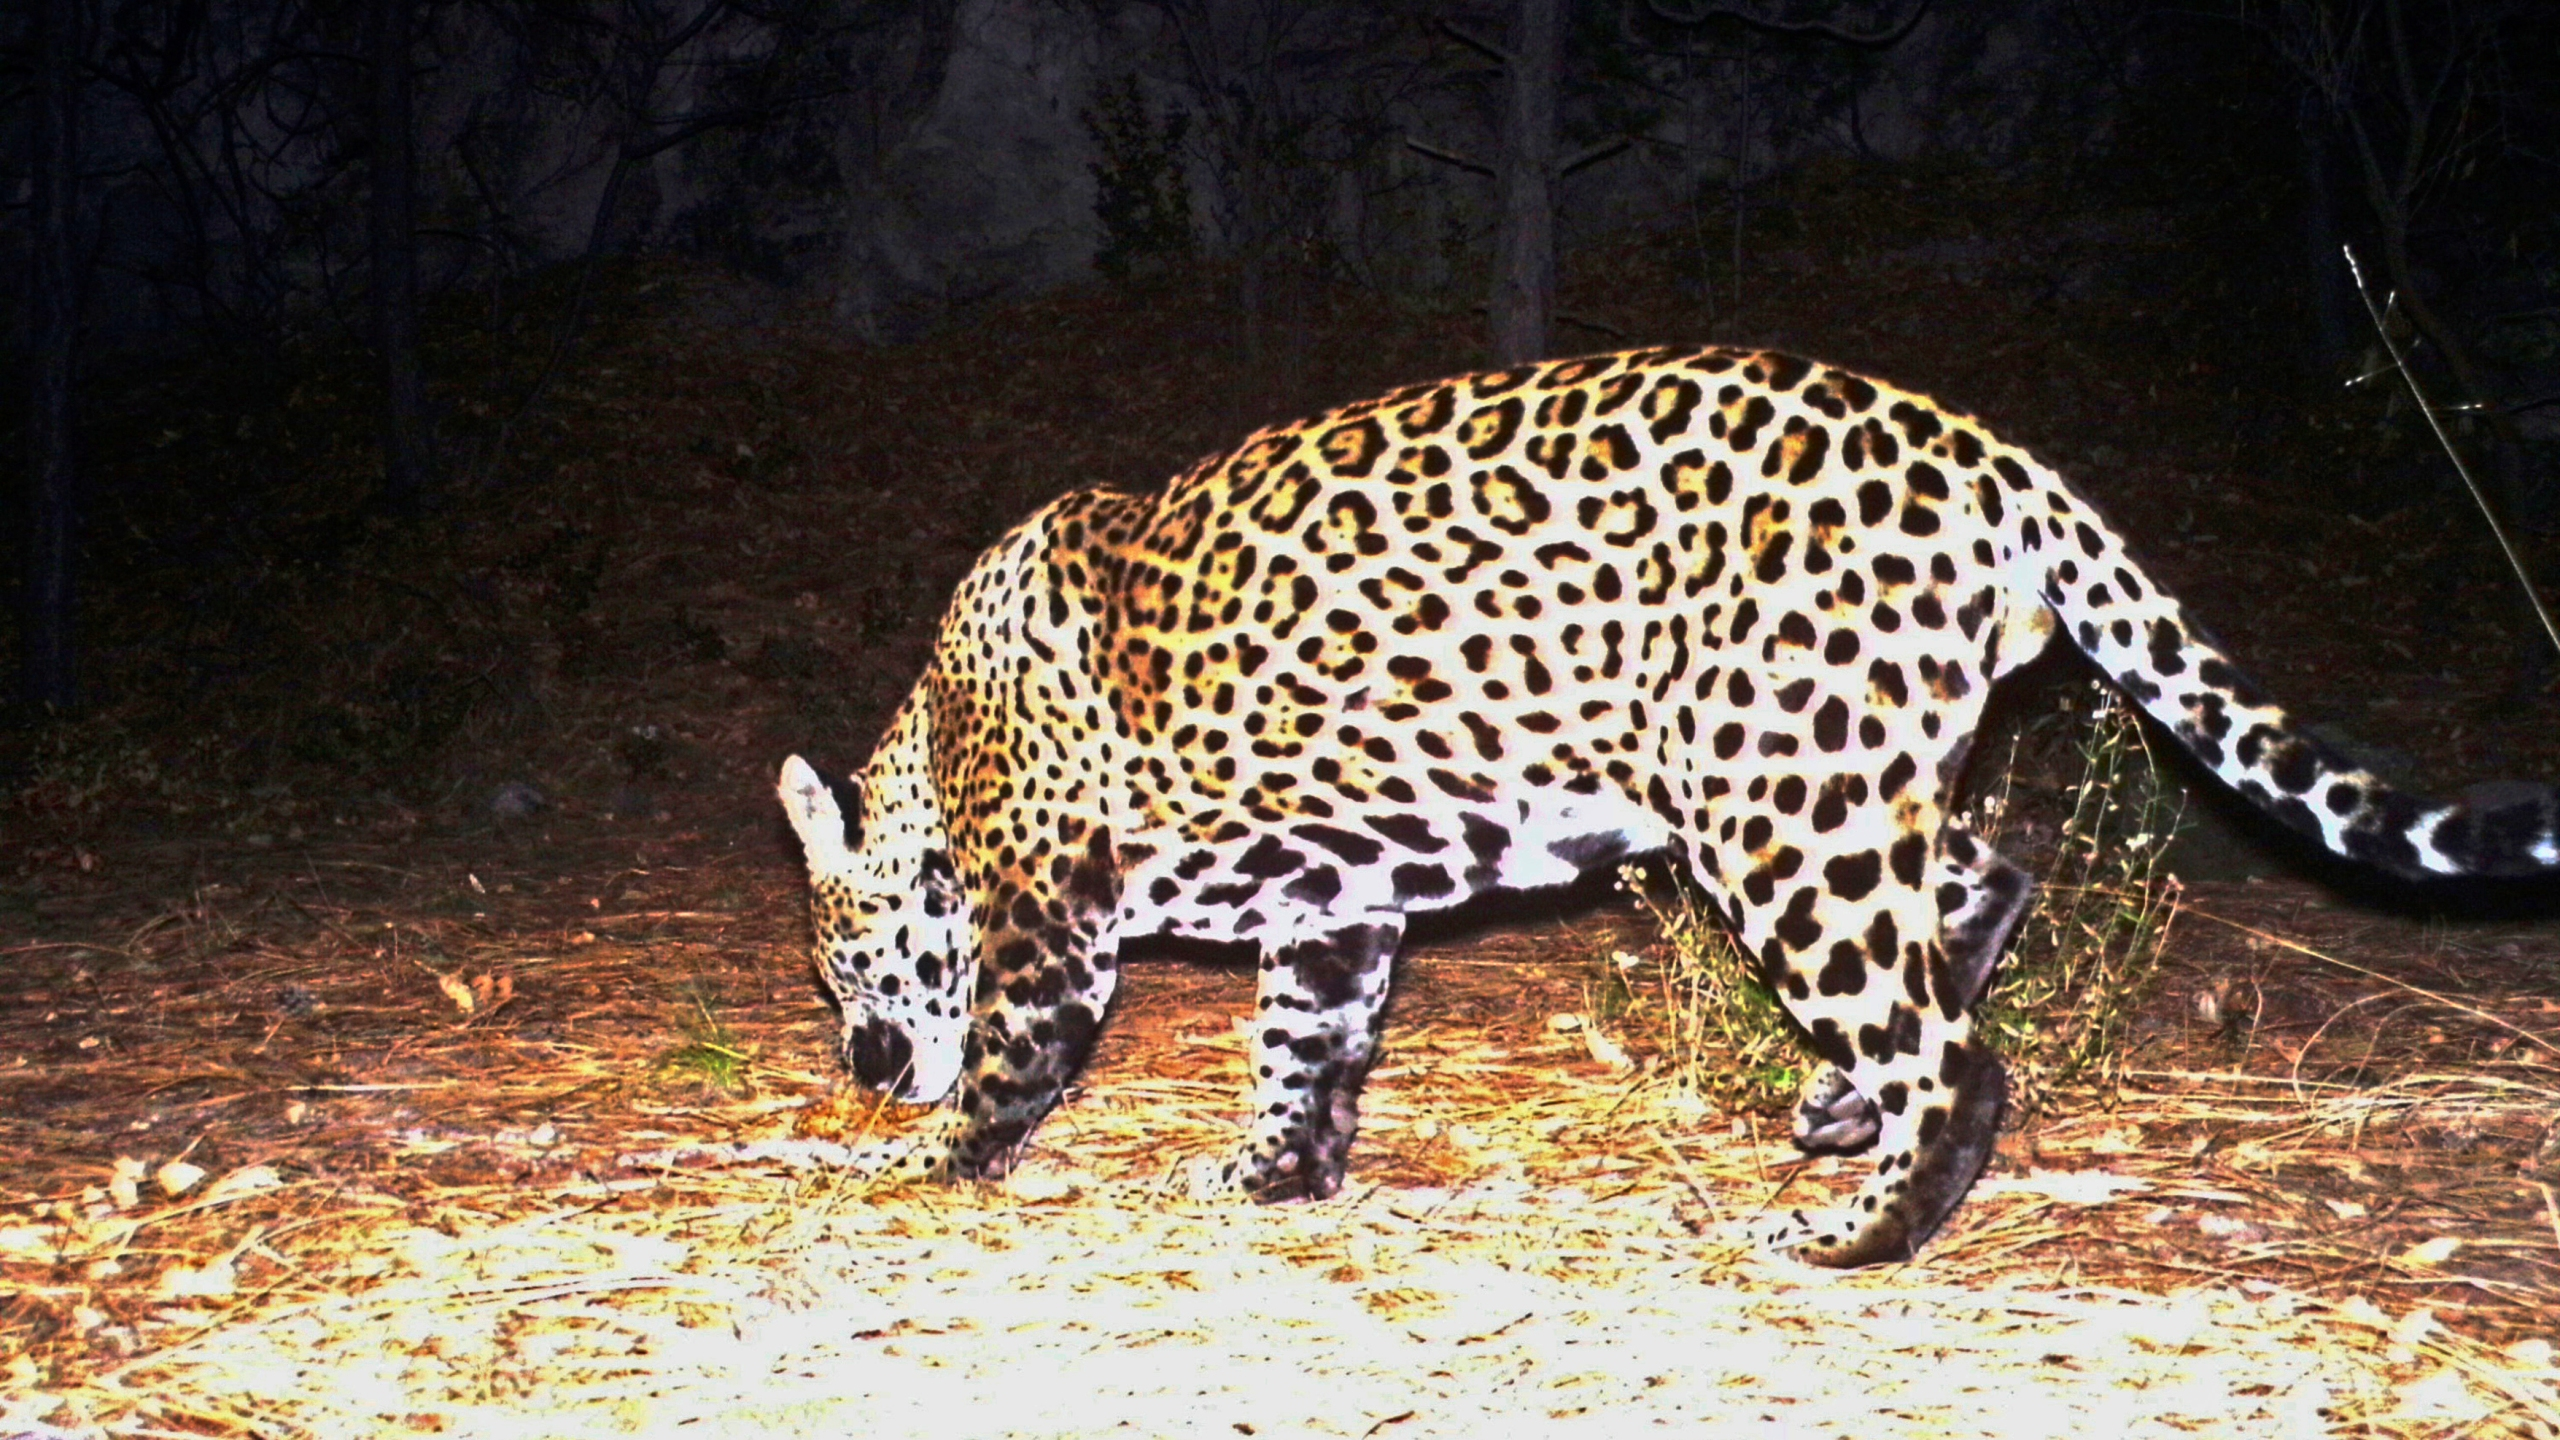 This Dec. 1, 2016 file image from video provided by Fort Huachuca shows a wild jaguar in southern Arizona. (Fort Huachuca via AP, File)This Dec. 1, 2016 file image from video provided by Fort Huachuca shows a wild jaguar in southern Arizona. (Fort Huachuca via AP, File)